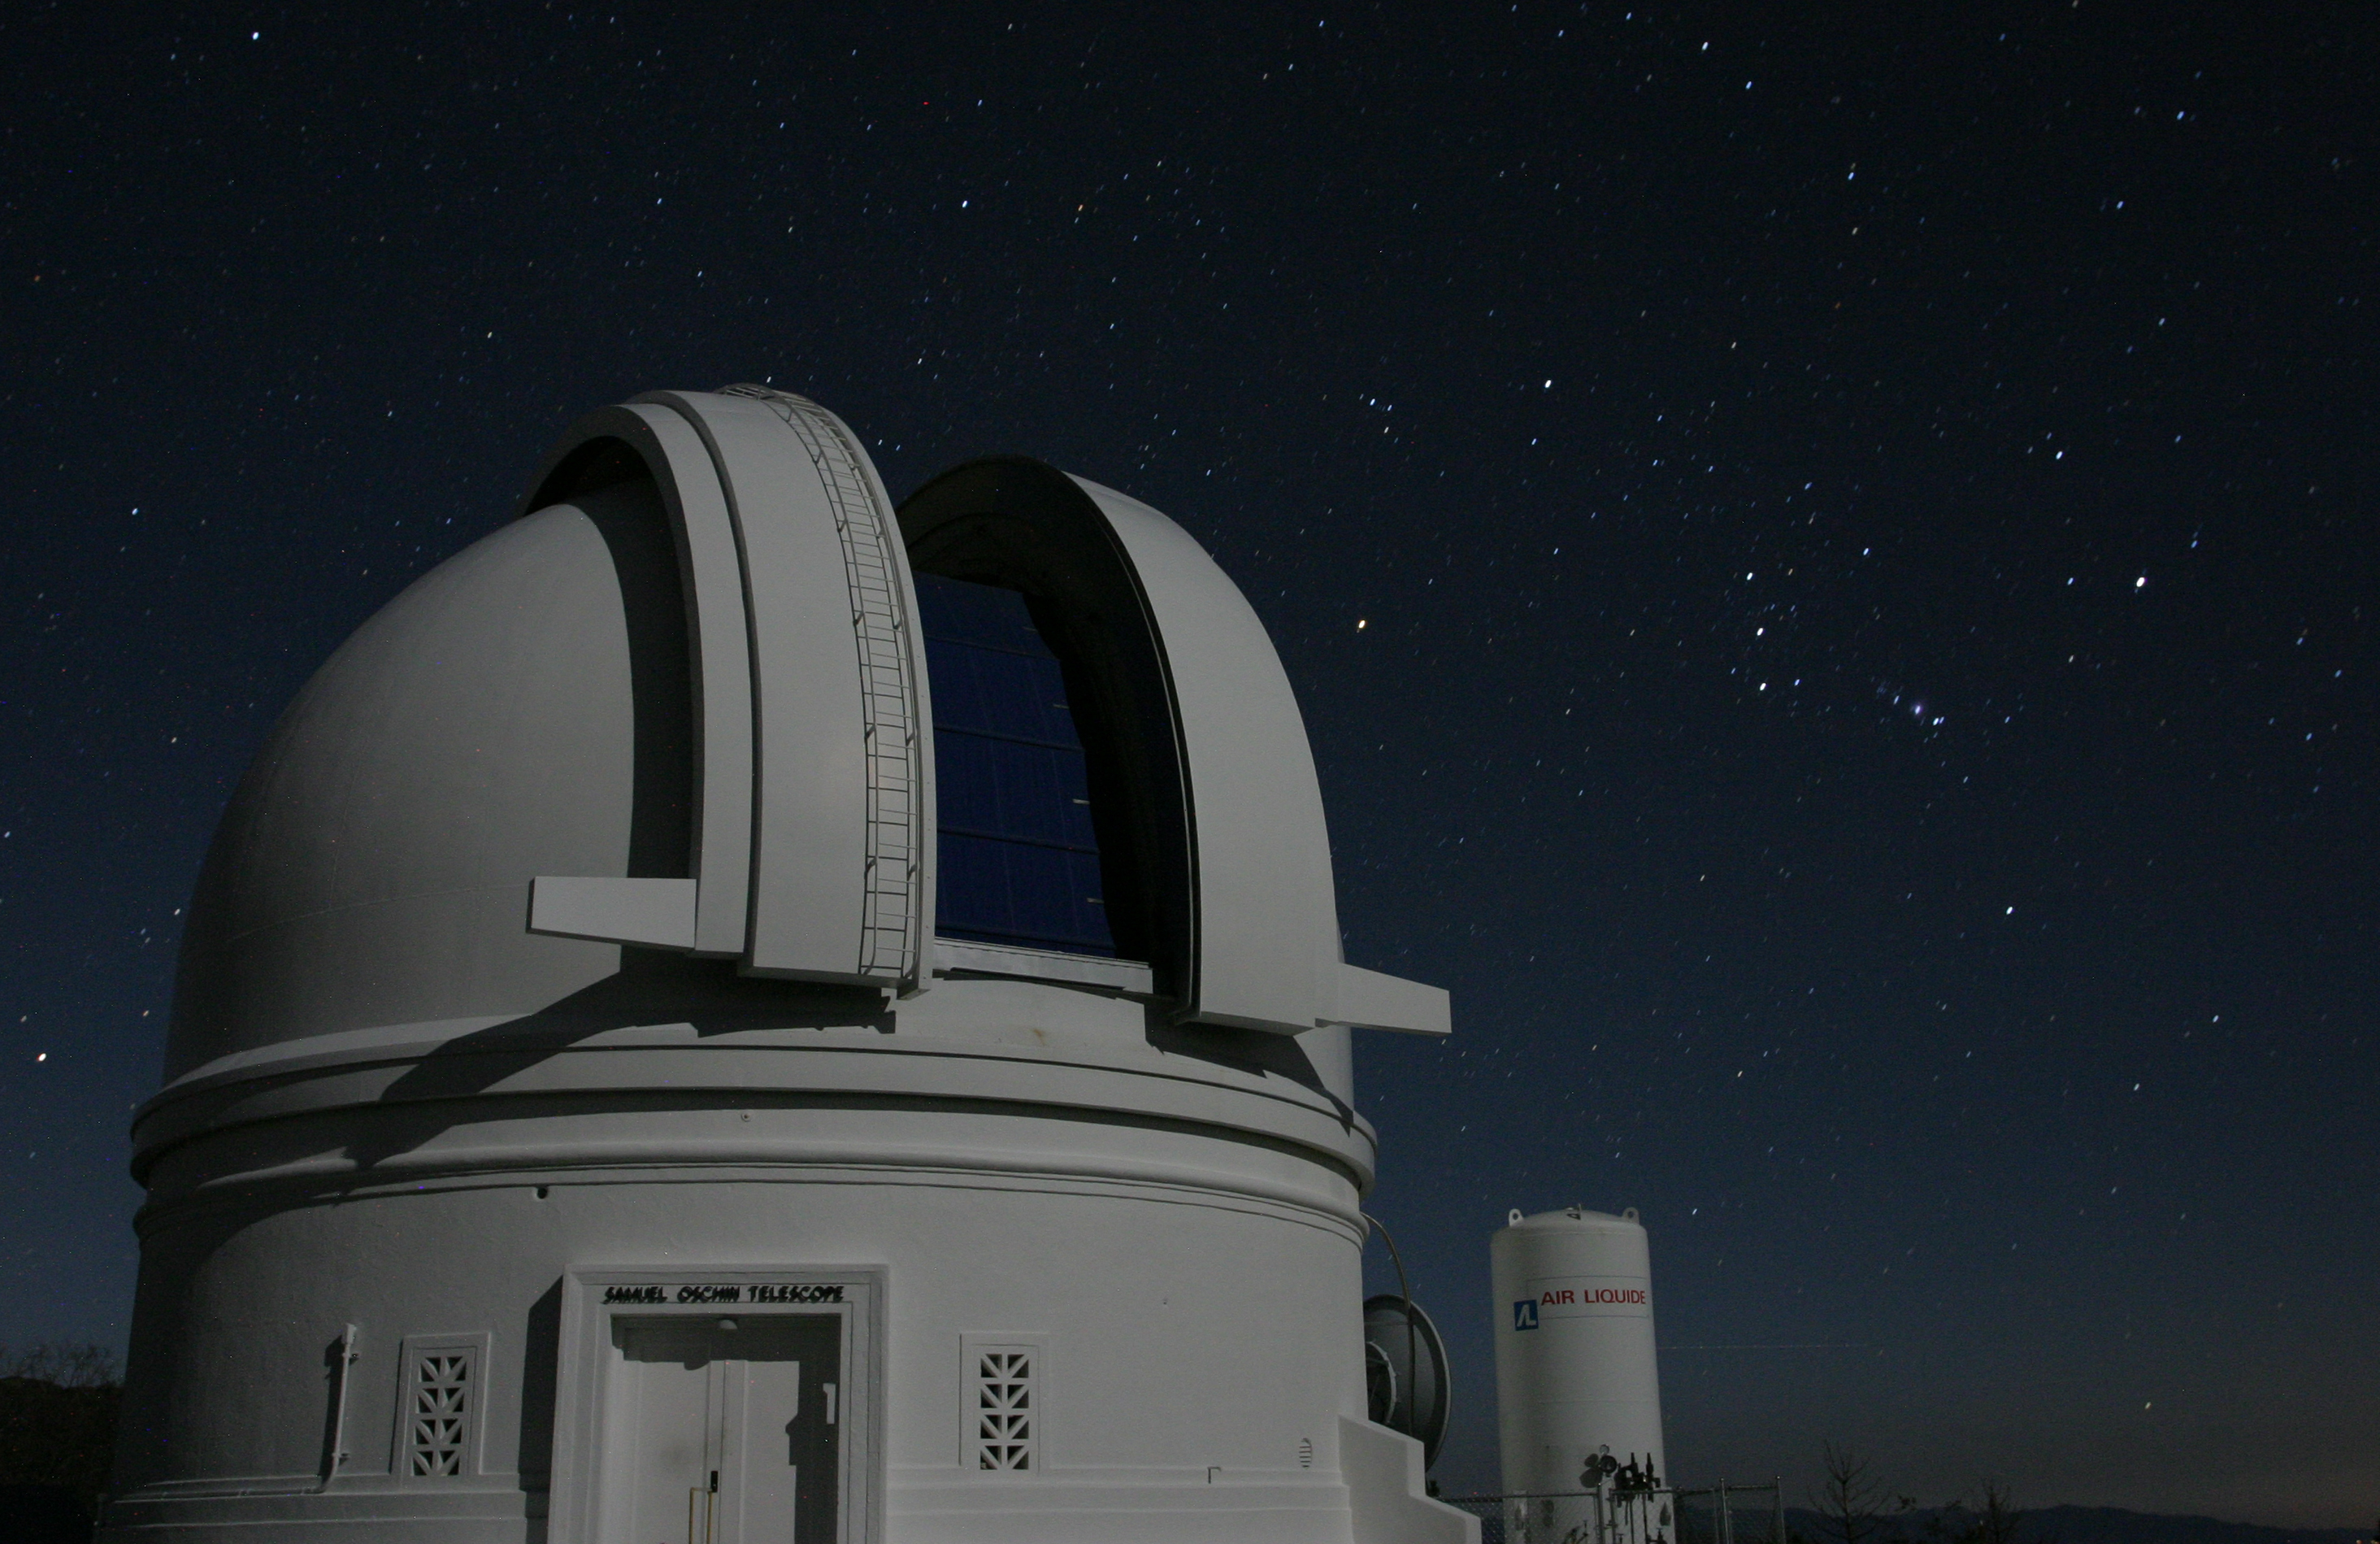 Astronomy Observatory with Telescope - Pics about space